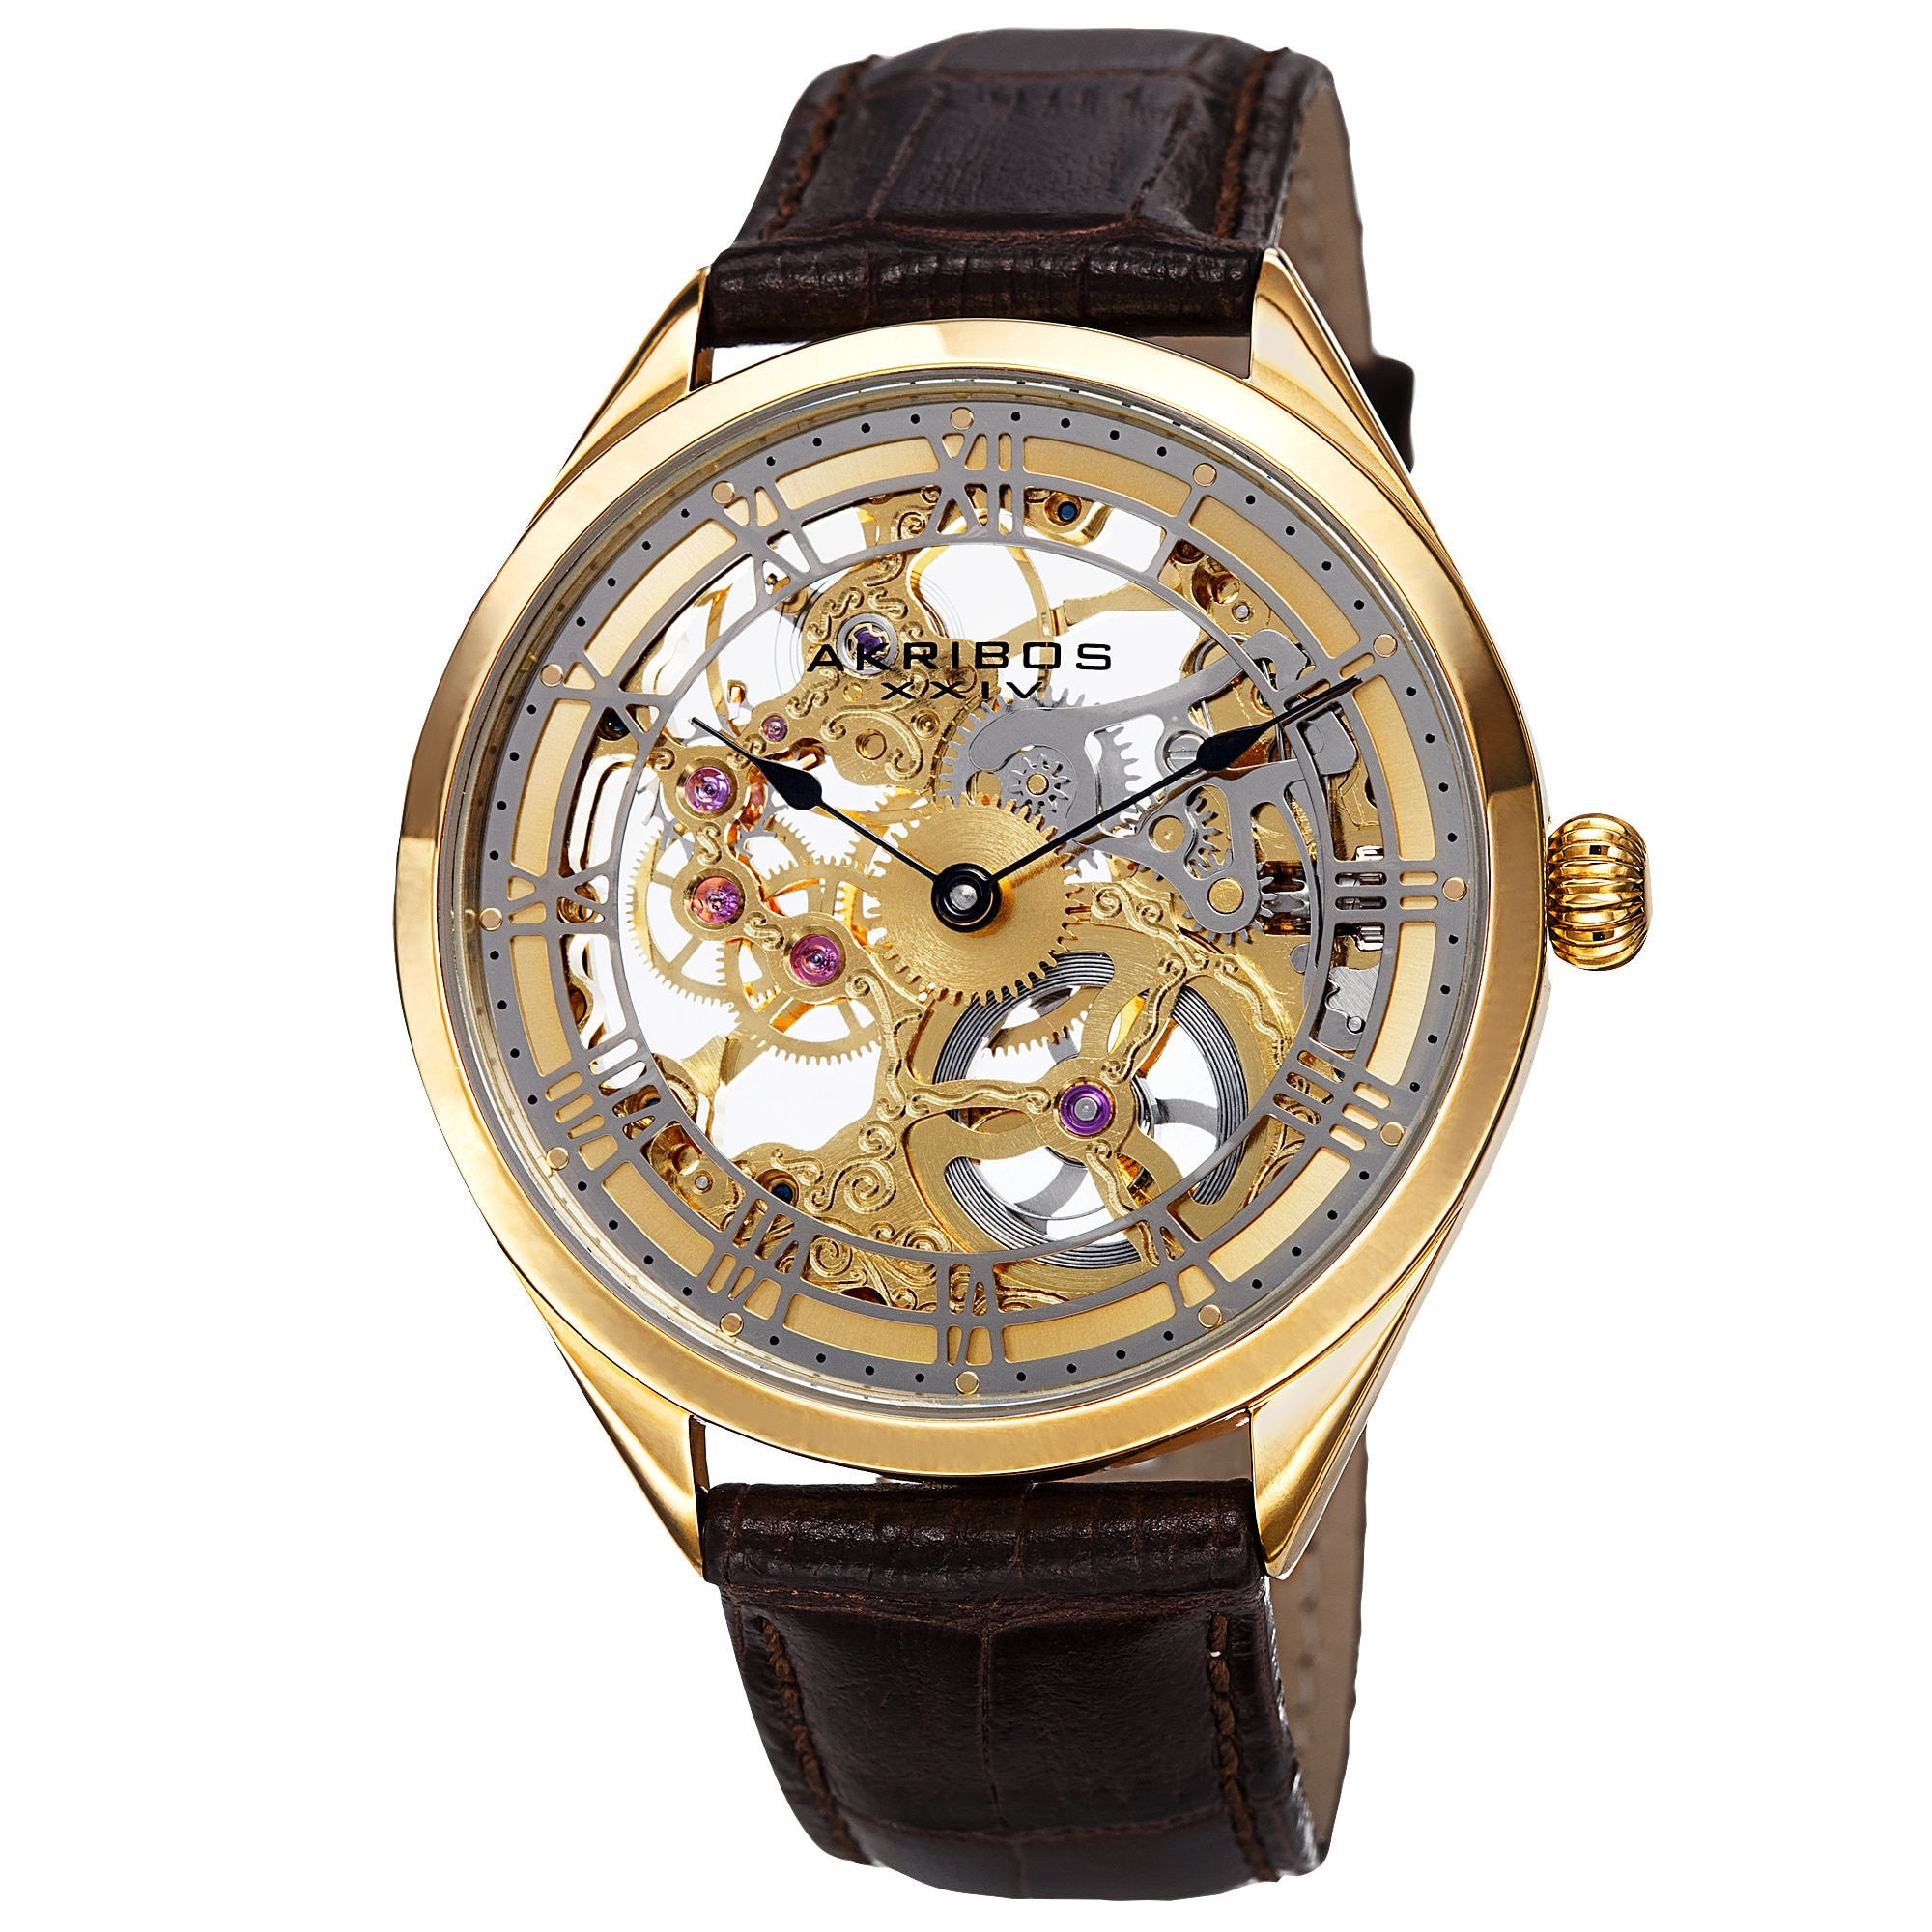 iwc one watchsale da soul watches more davinci vinci uk